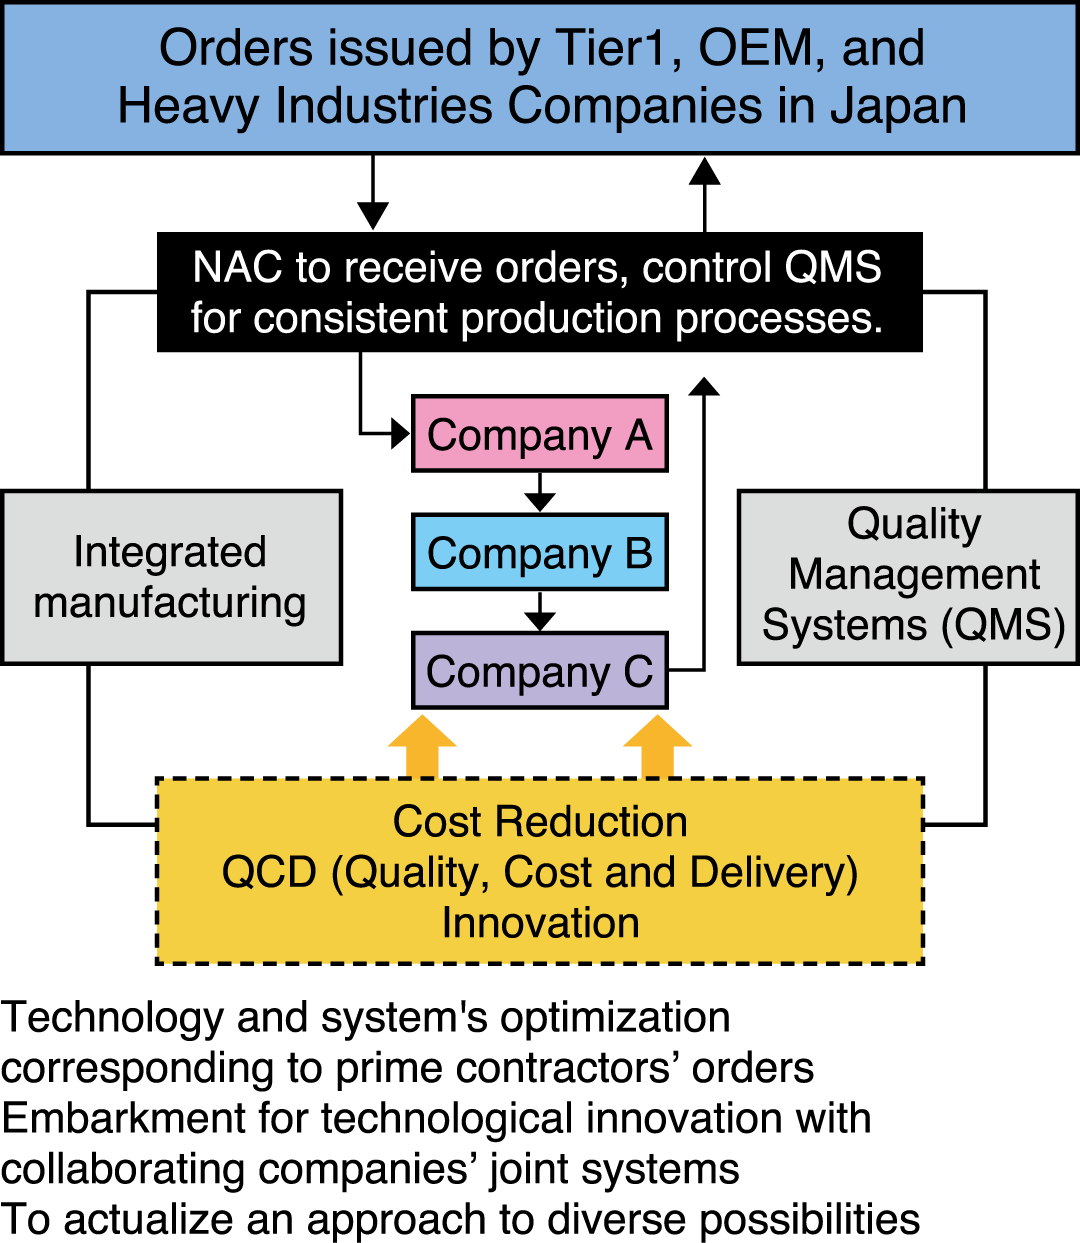 Consistent-Production-Processes (Aerospace Supply Chain Renovation)